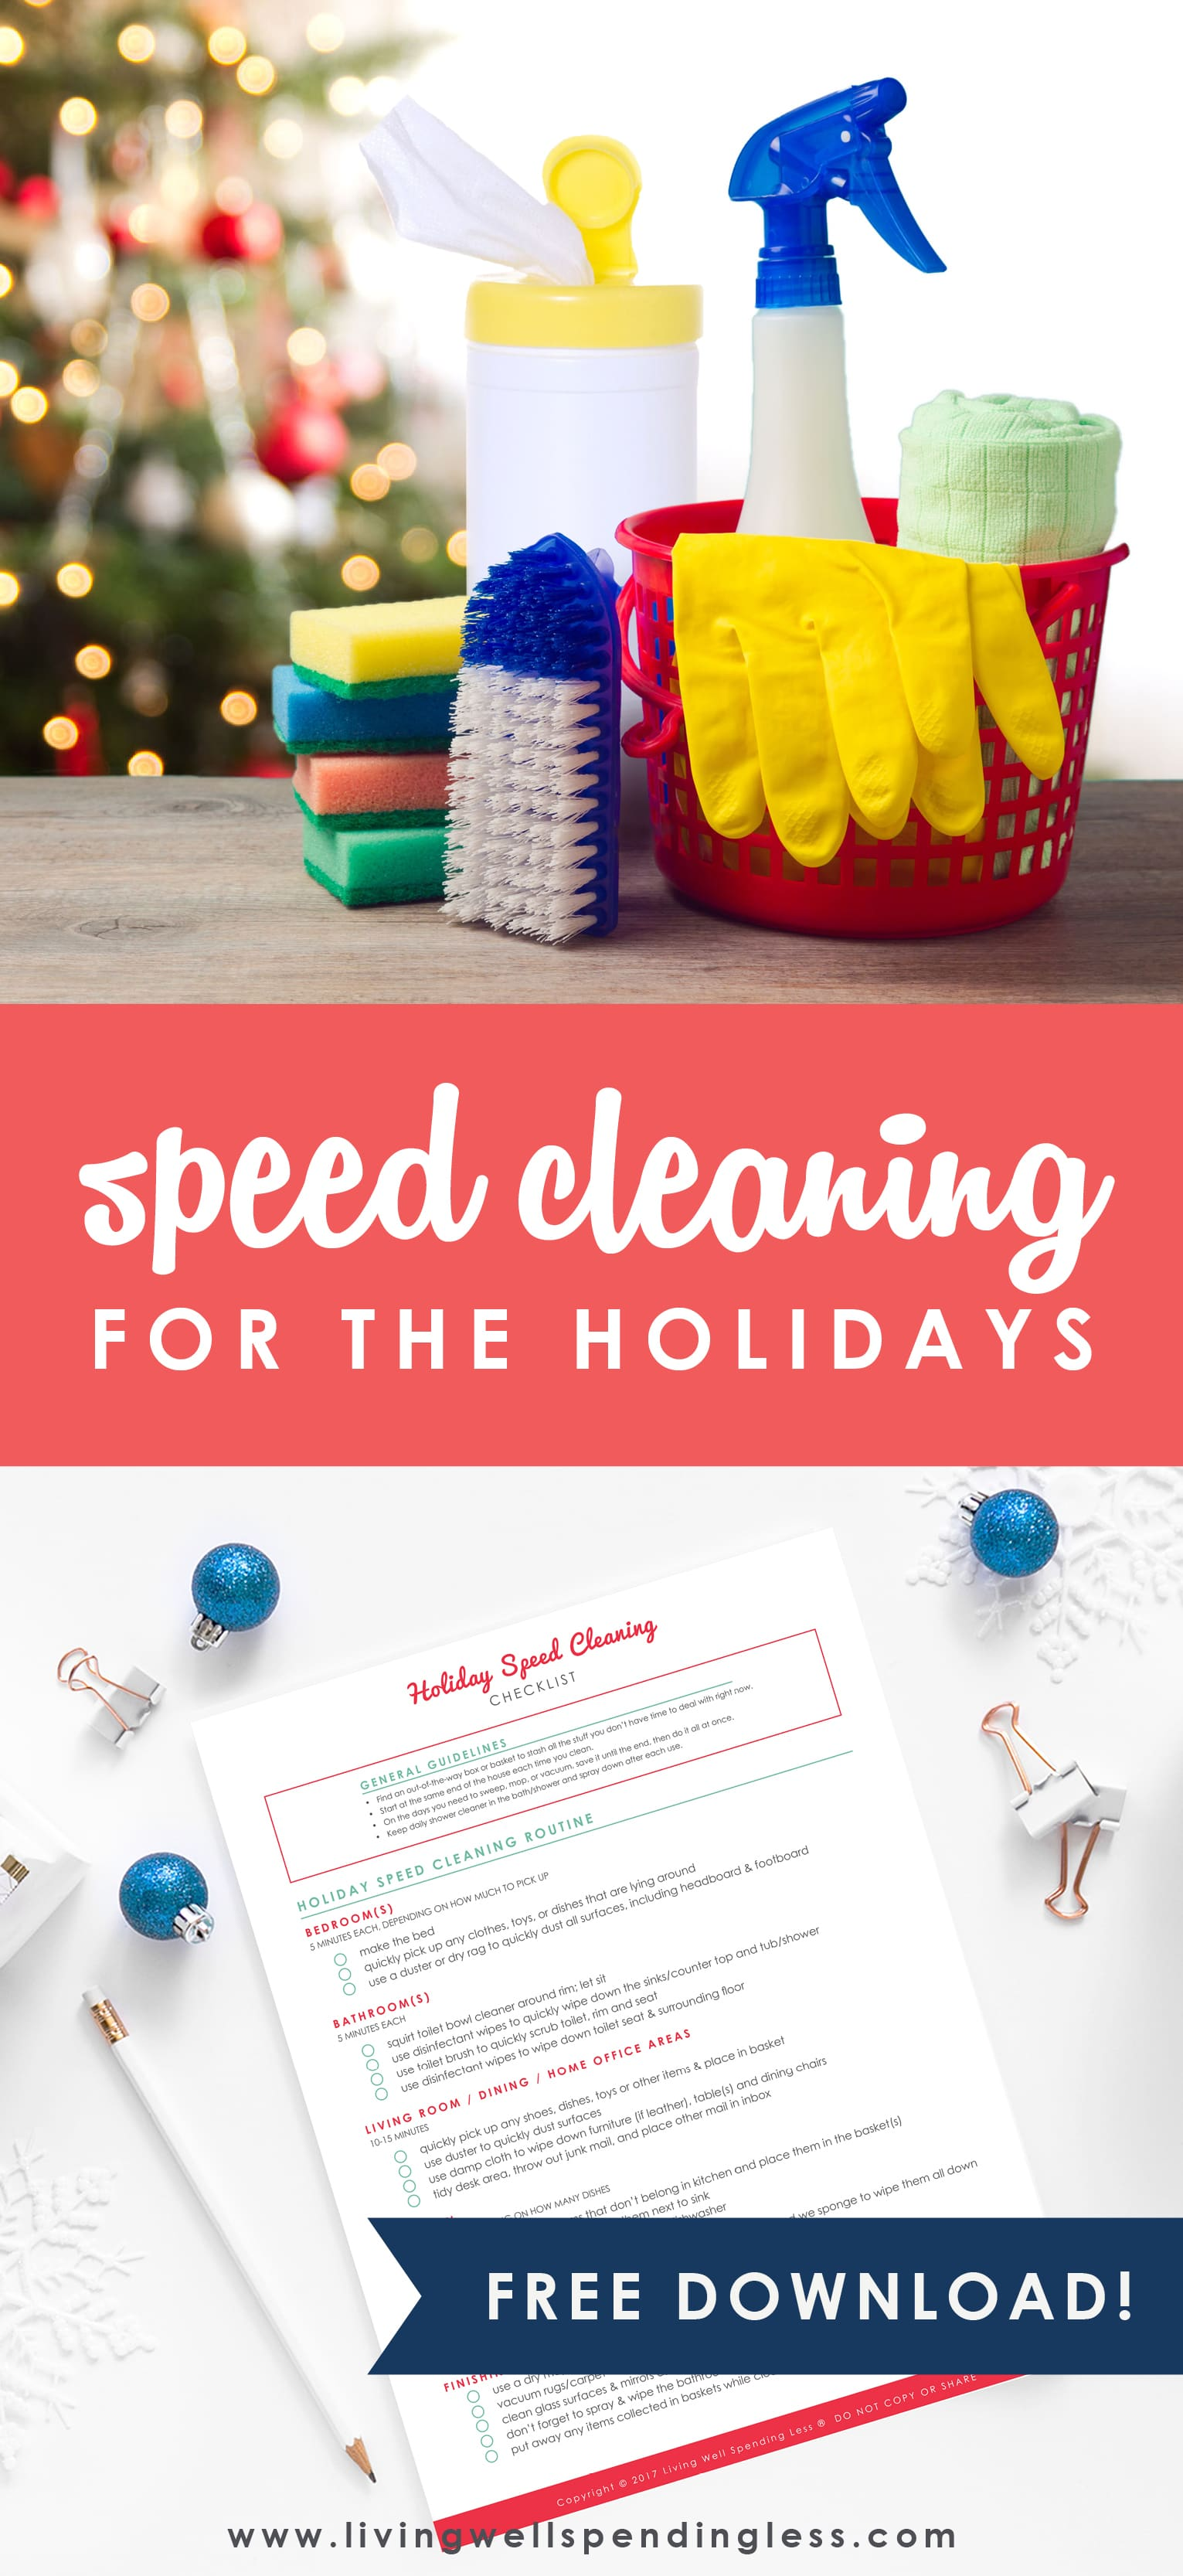 Don't have any extra time to clean during the holidays? No sweat! I've put together my speed cleaning routine to help you tidy your home in half the time to keep the sparkle in your holiday season.